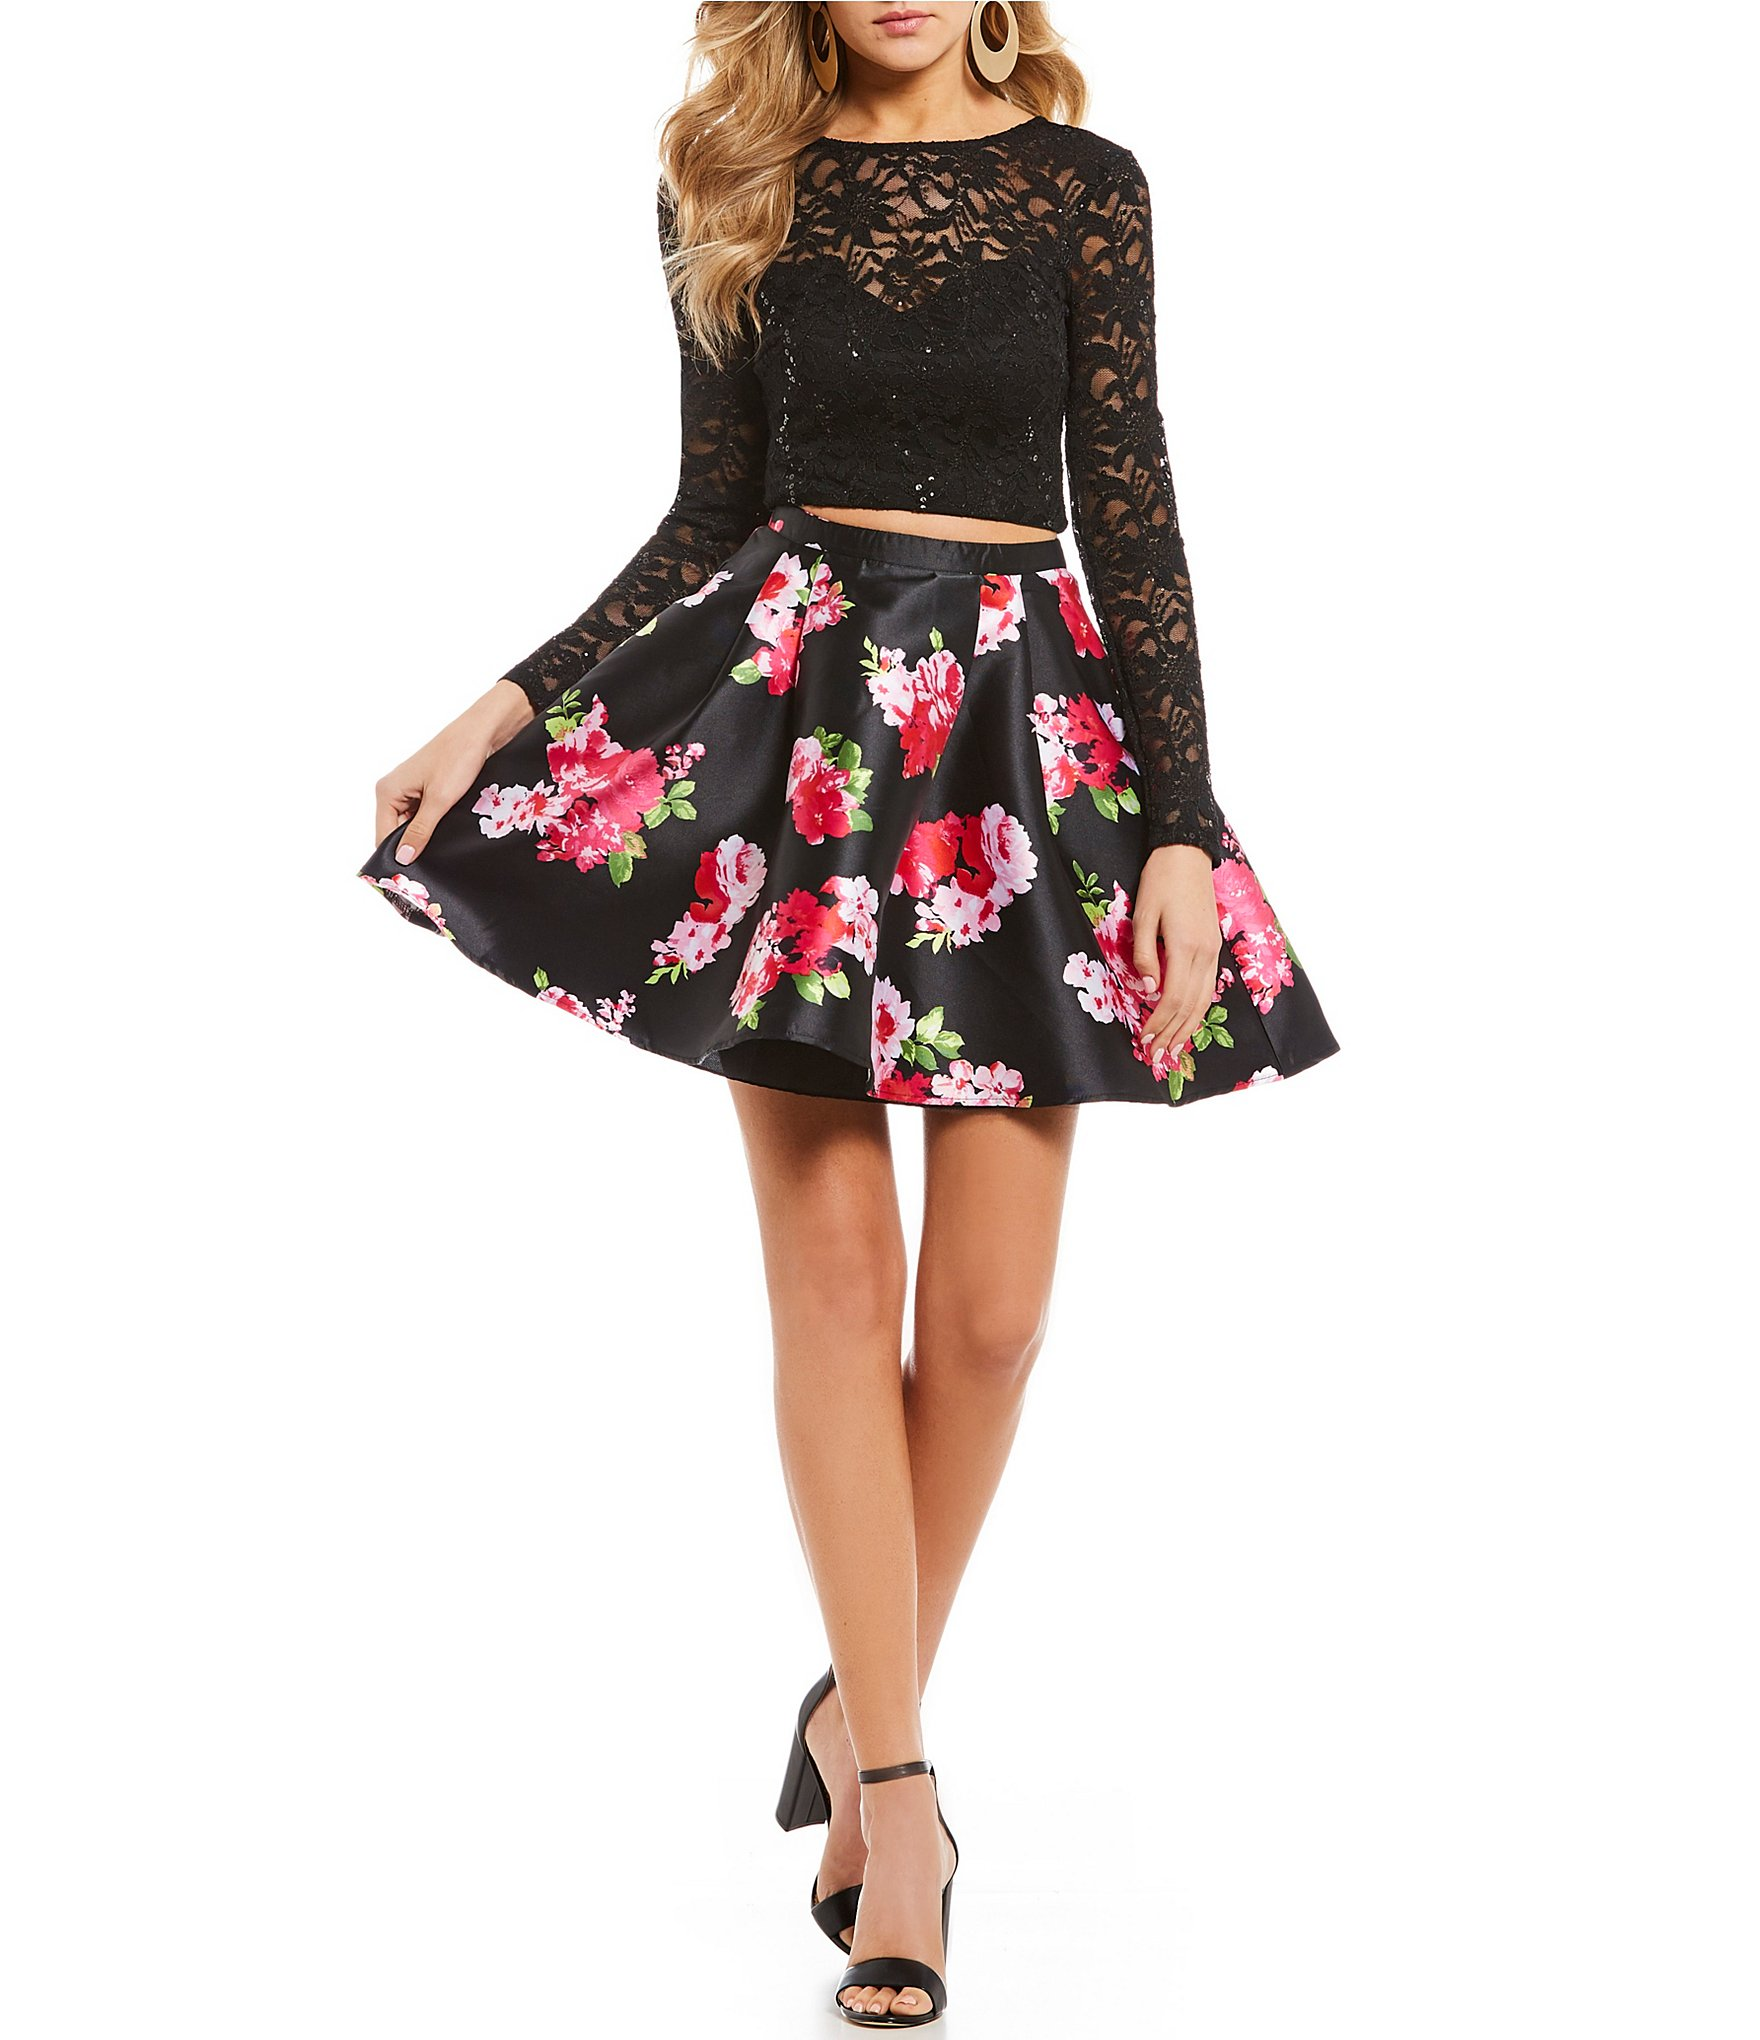 B. Darlin Sequin Lace Top with Floral Skirt Two-Piece